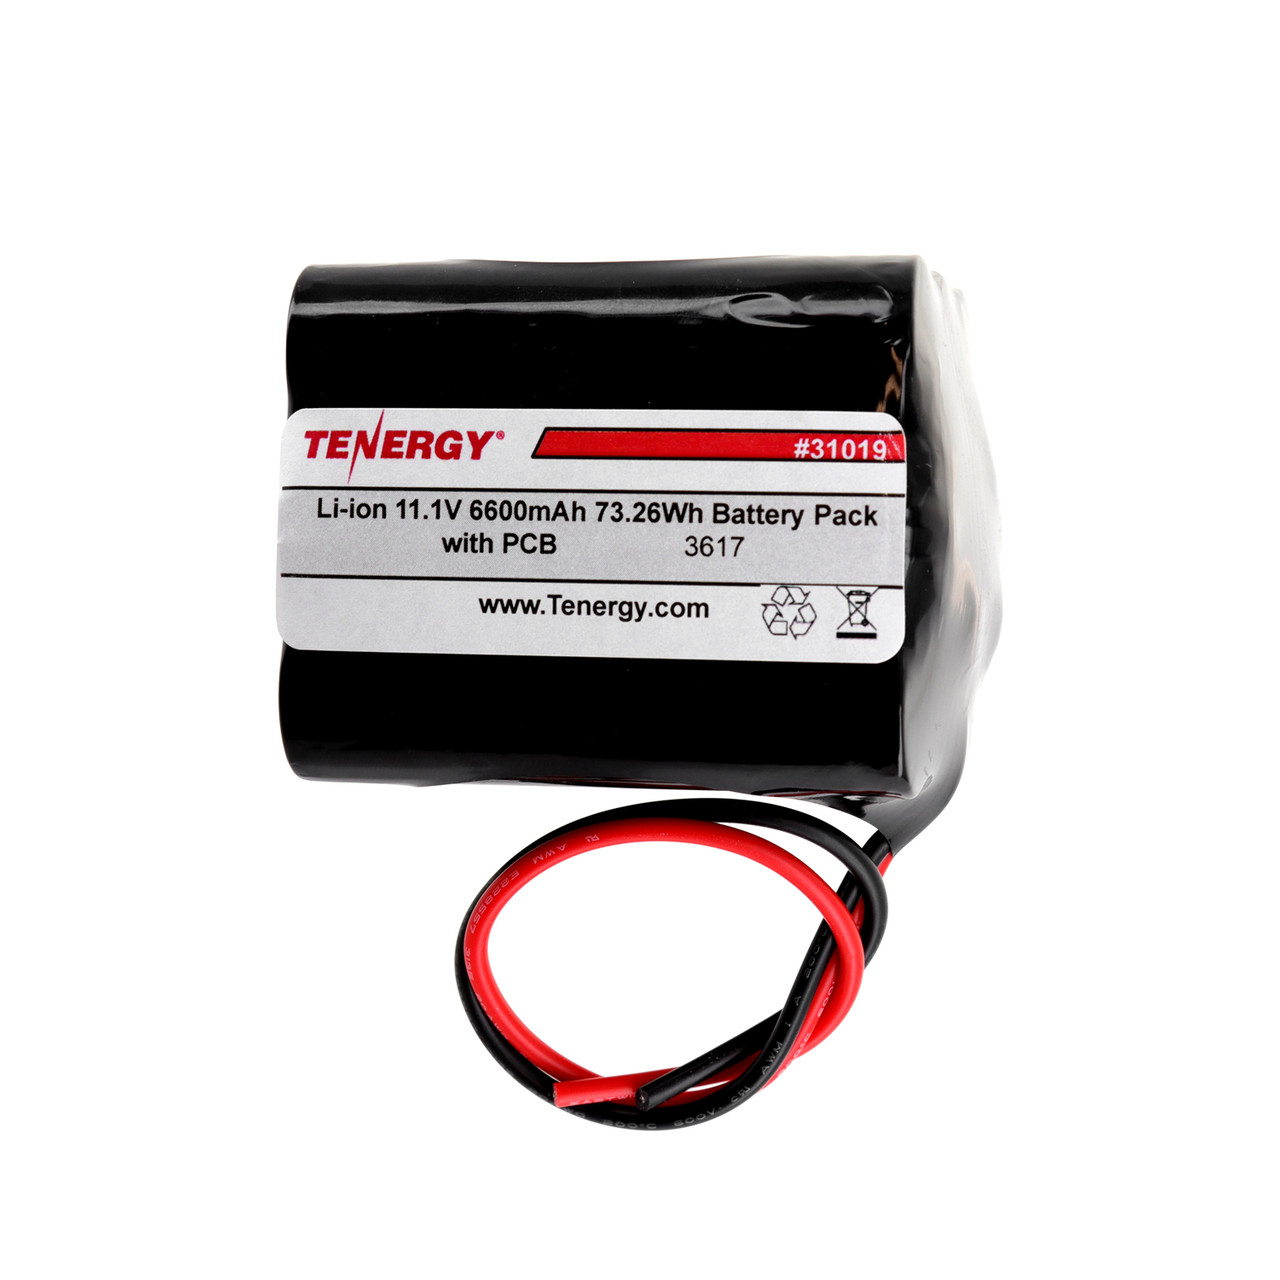 AT: Tenergy Li-ion 18650 11.1V 6600mAh Rechargeable Battery Pack w/ PCB (3S3P, 73.26Wh, 5.7A Rate)